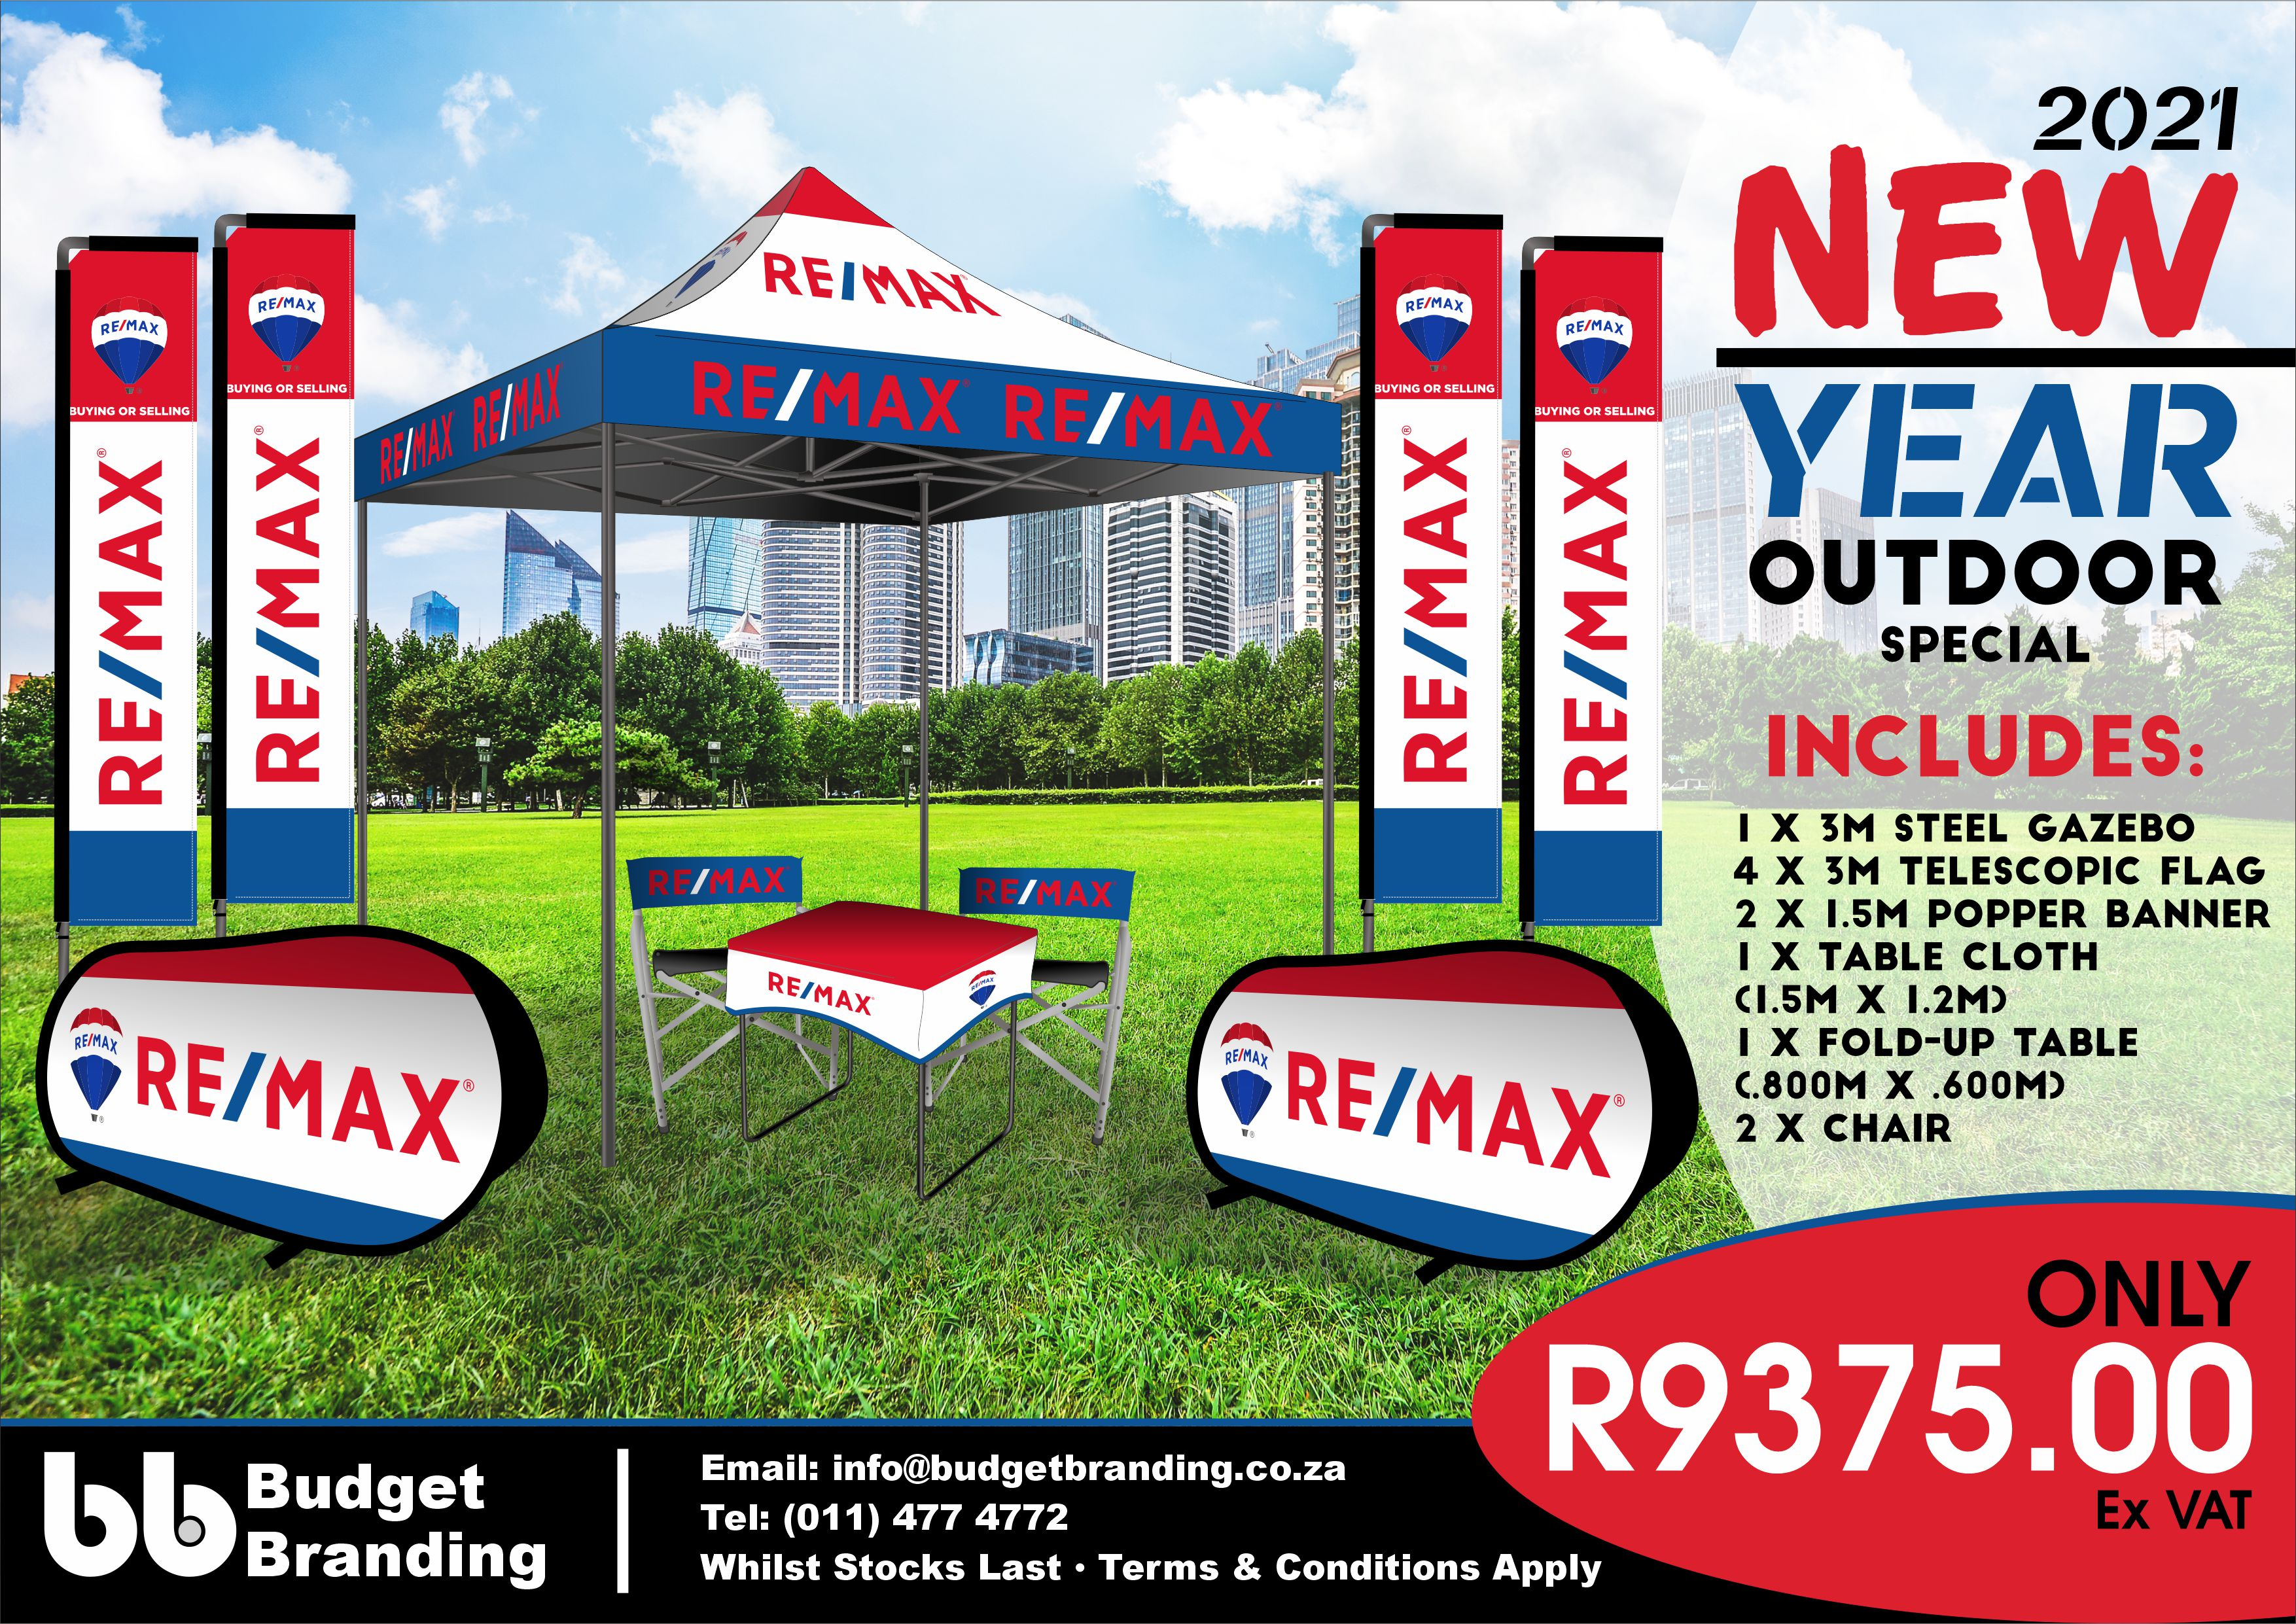 2021 New Year Outdoor Special